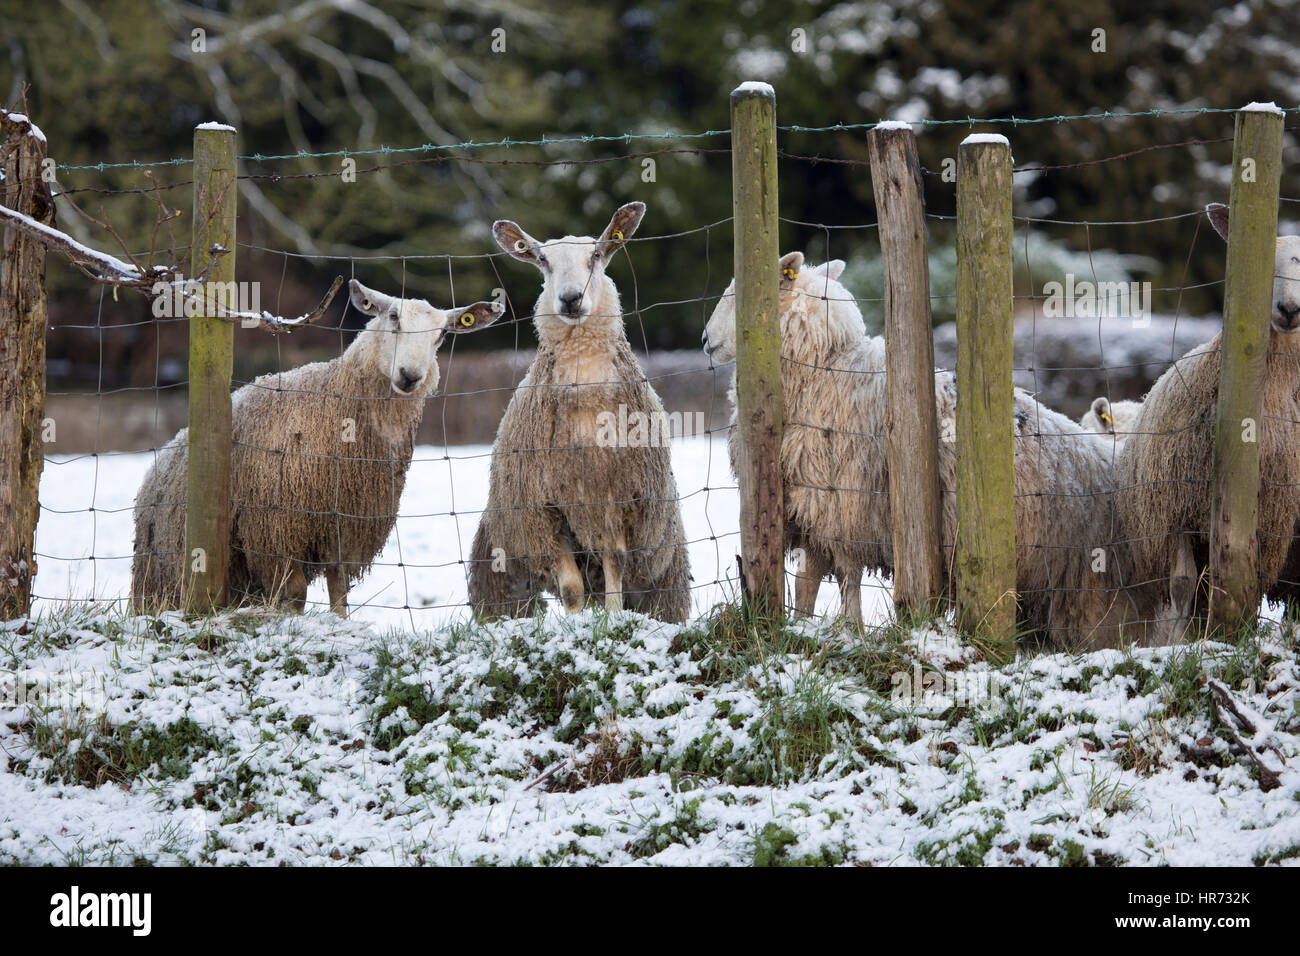 Welsh Speed datant moutons